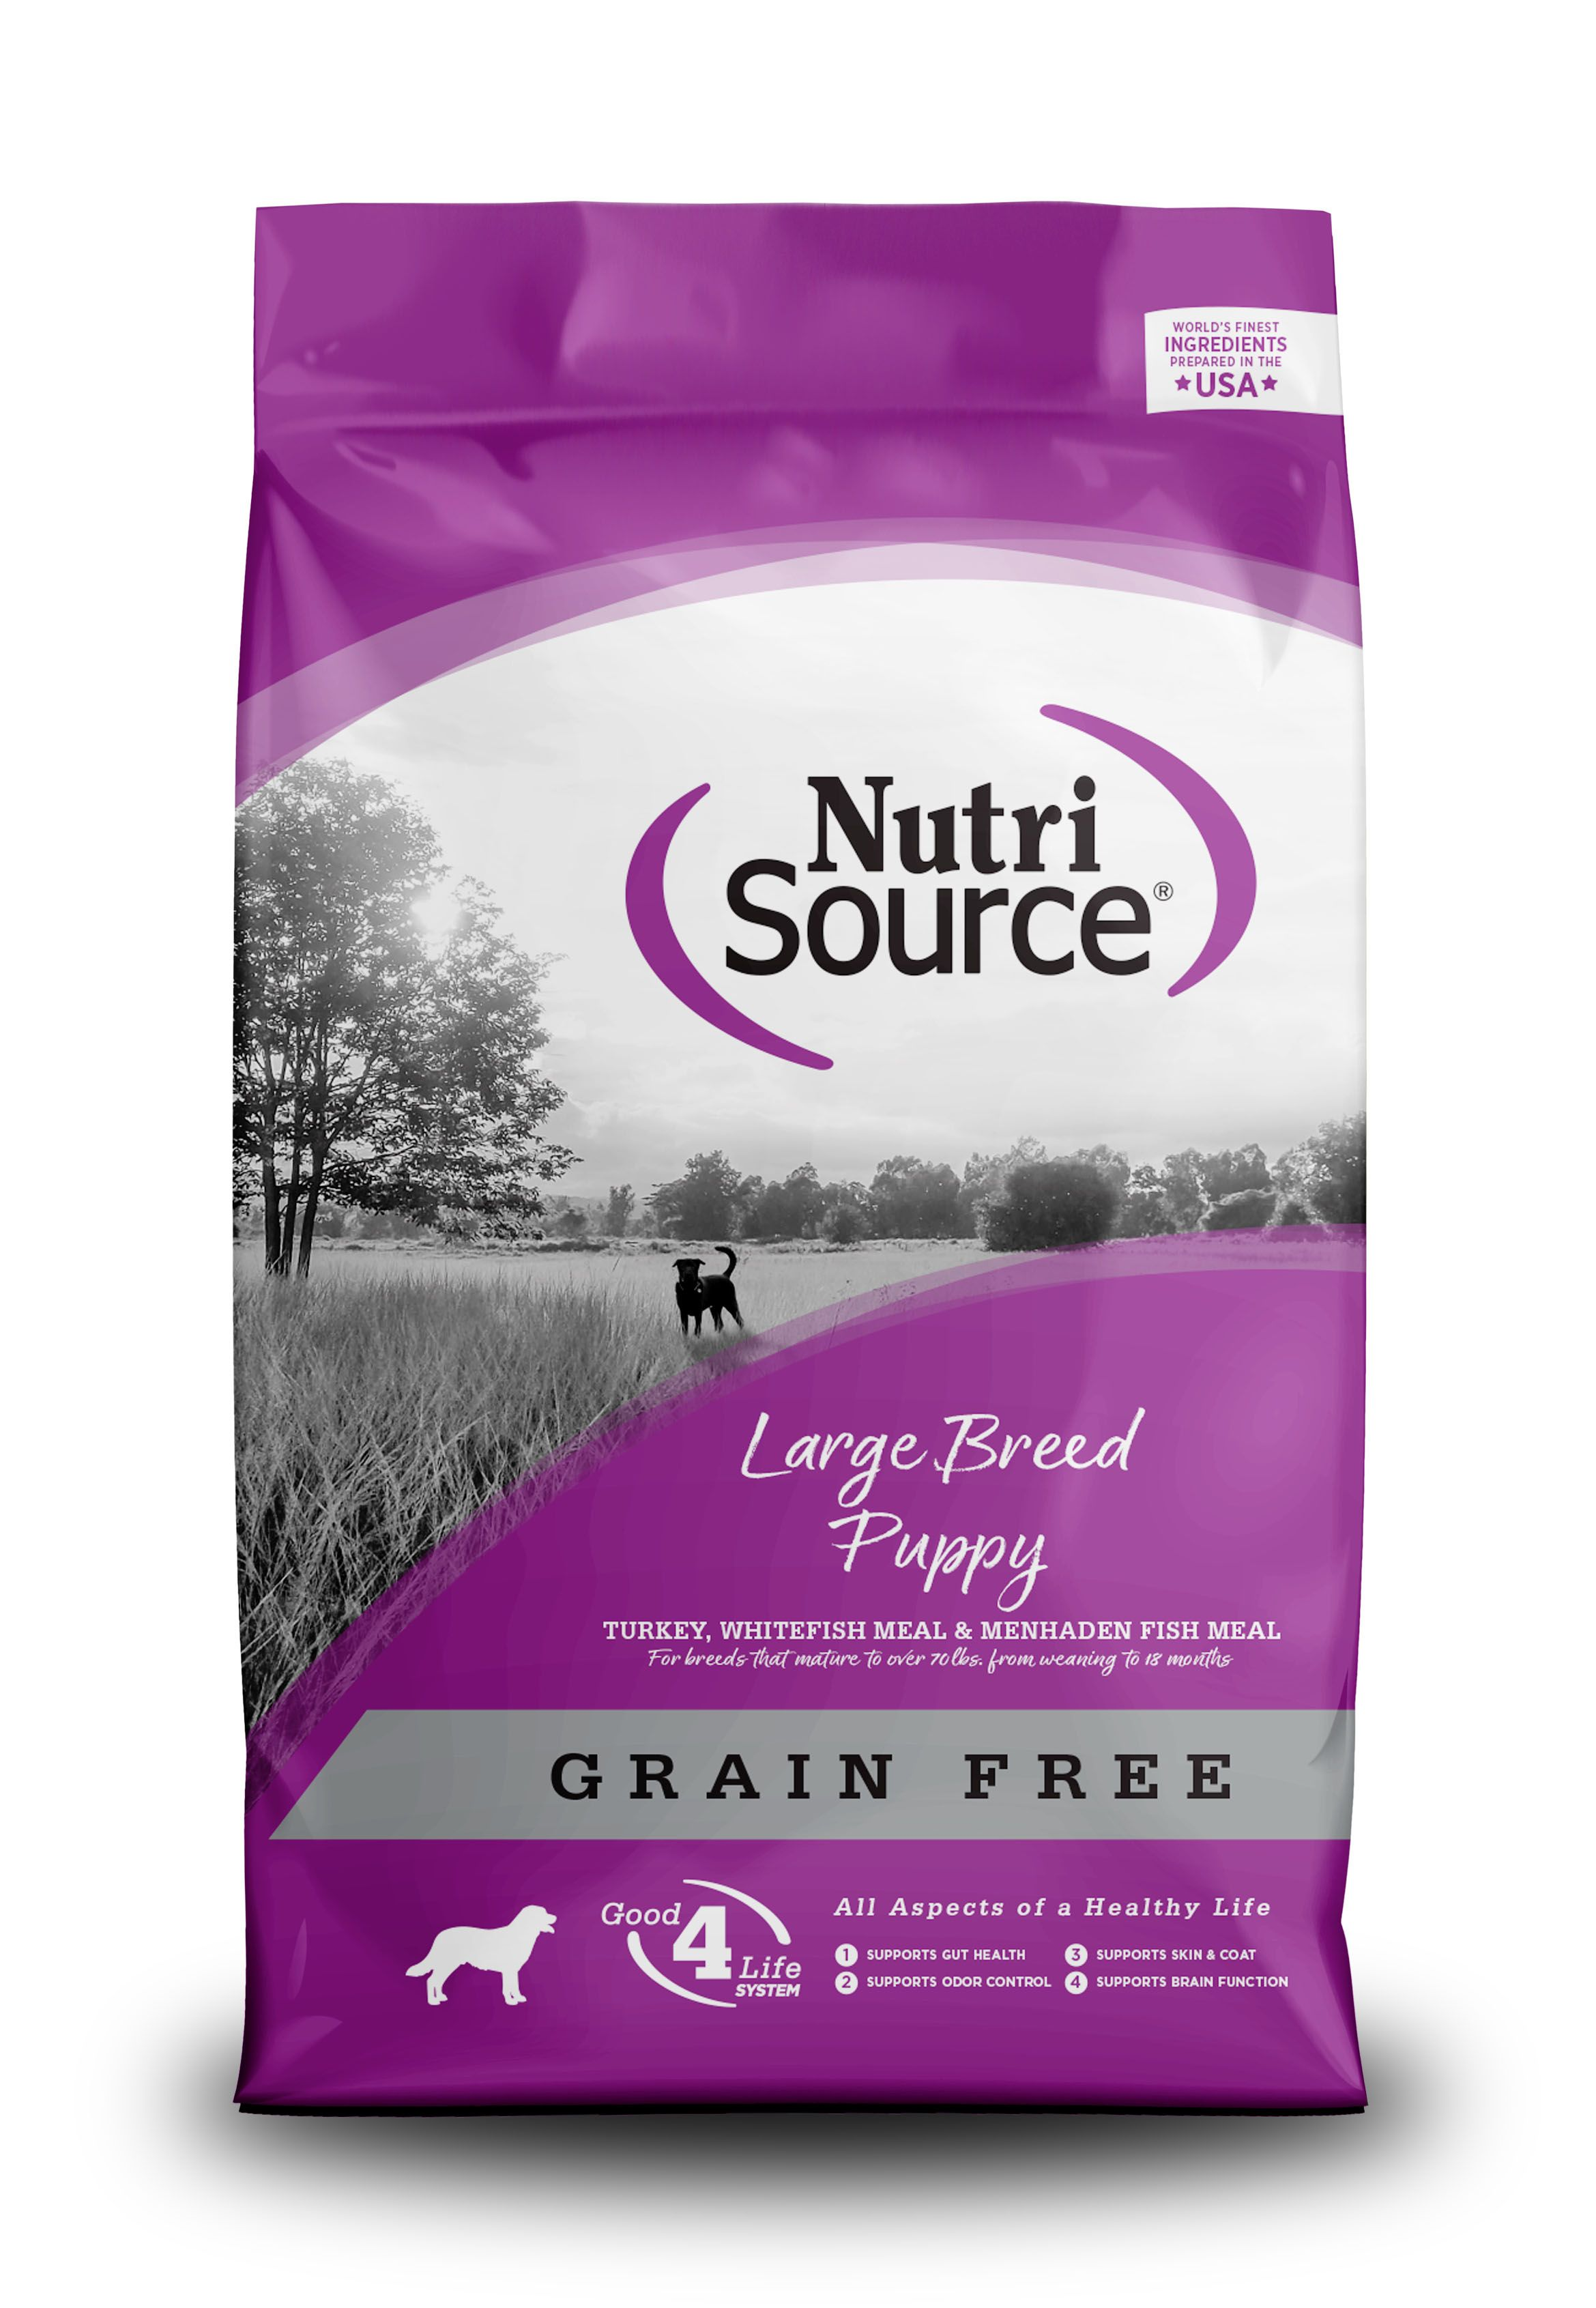 NutriSource Grain Free Large Breed Puppy Recipe Dry Dog Food Image